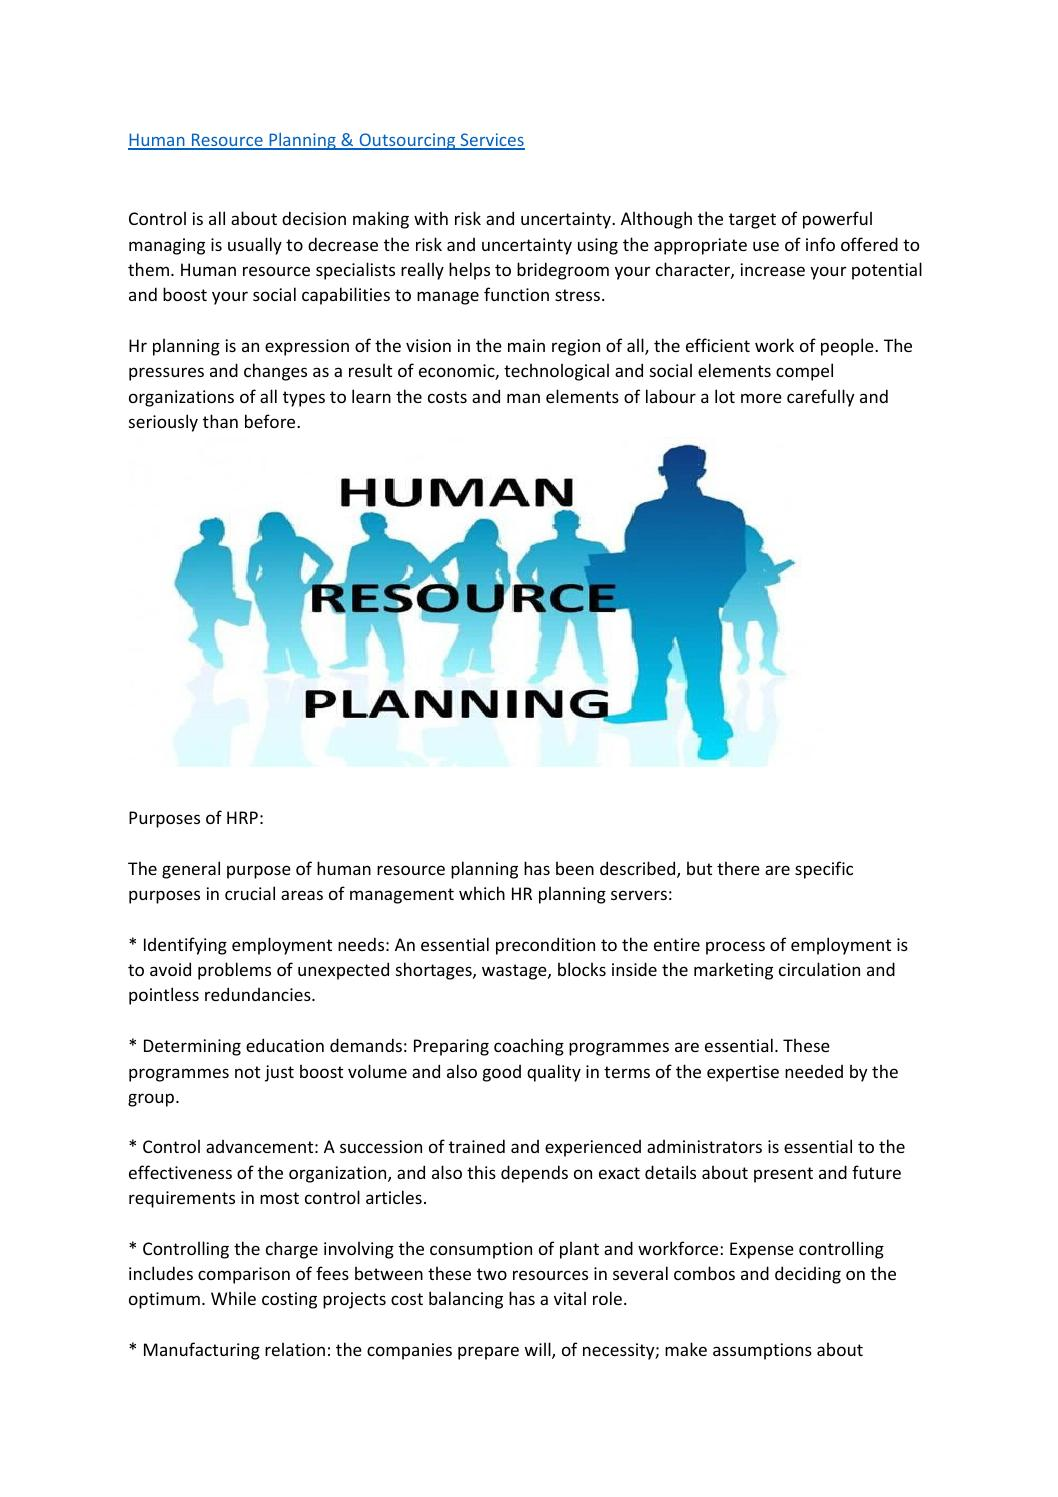 Human resource planning & outsourcing services by themisconsult - Issuu